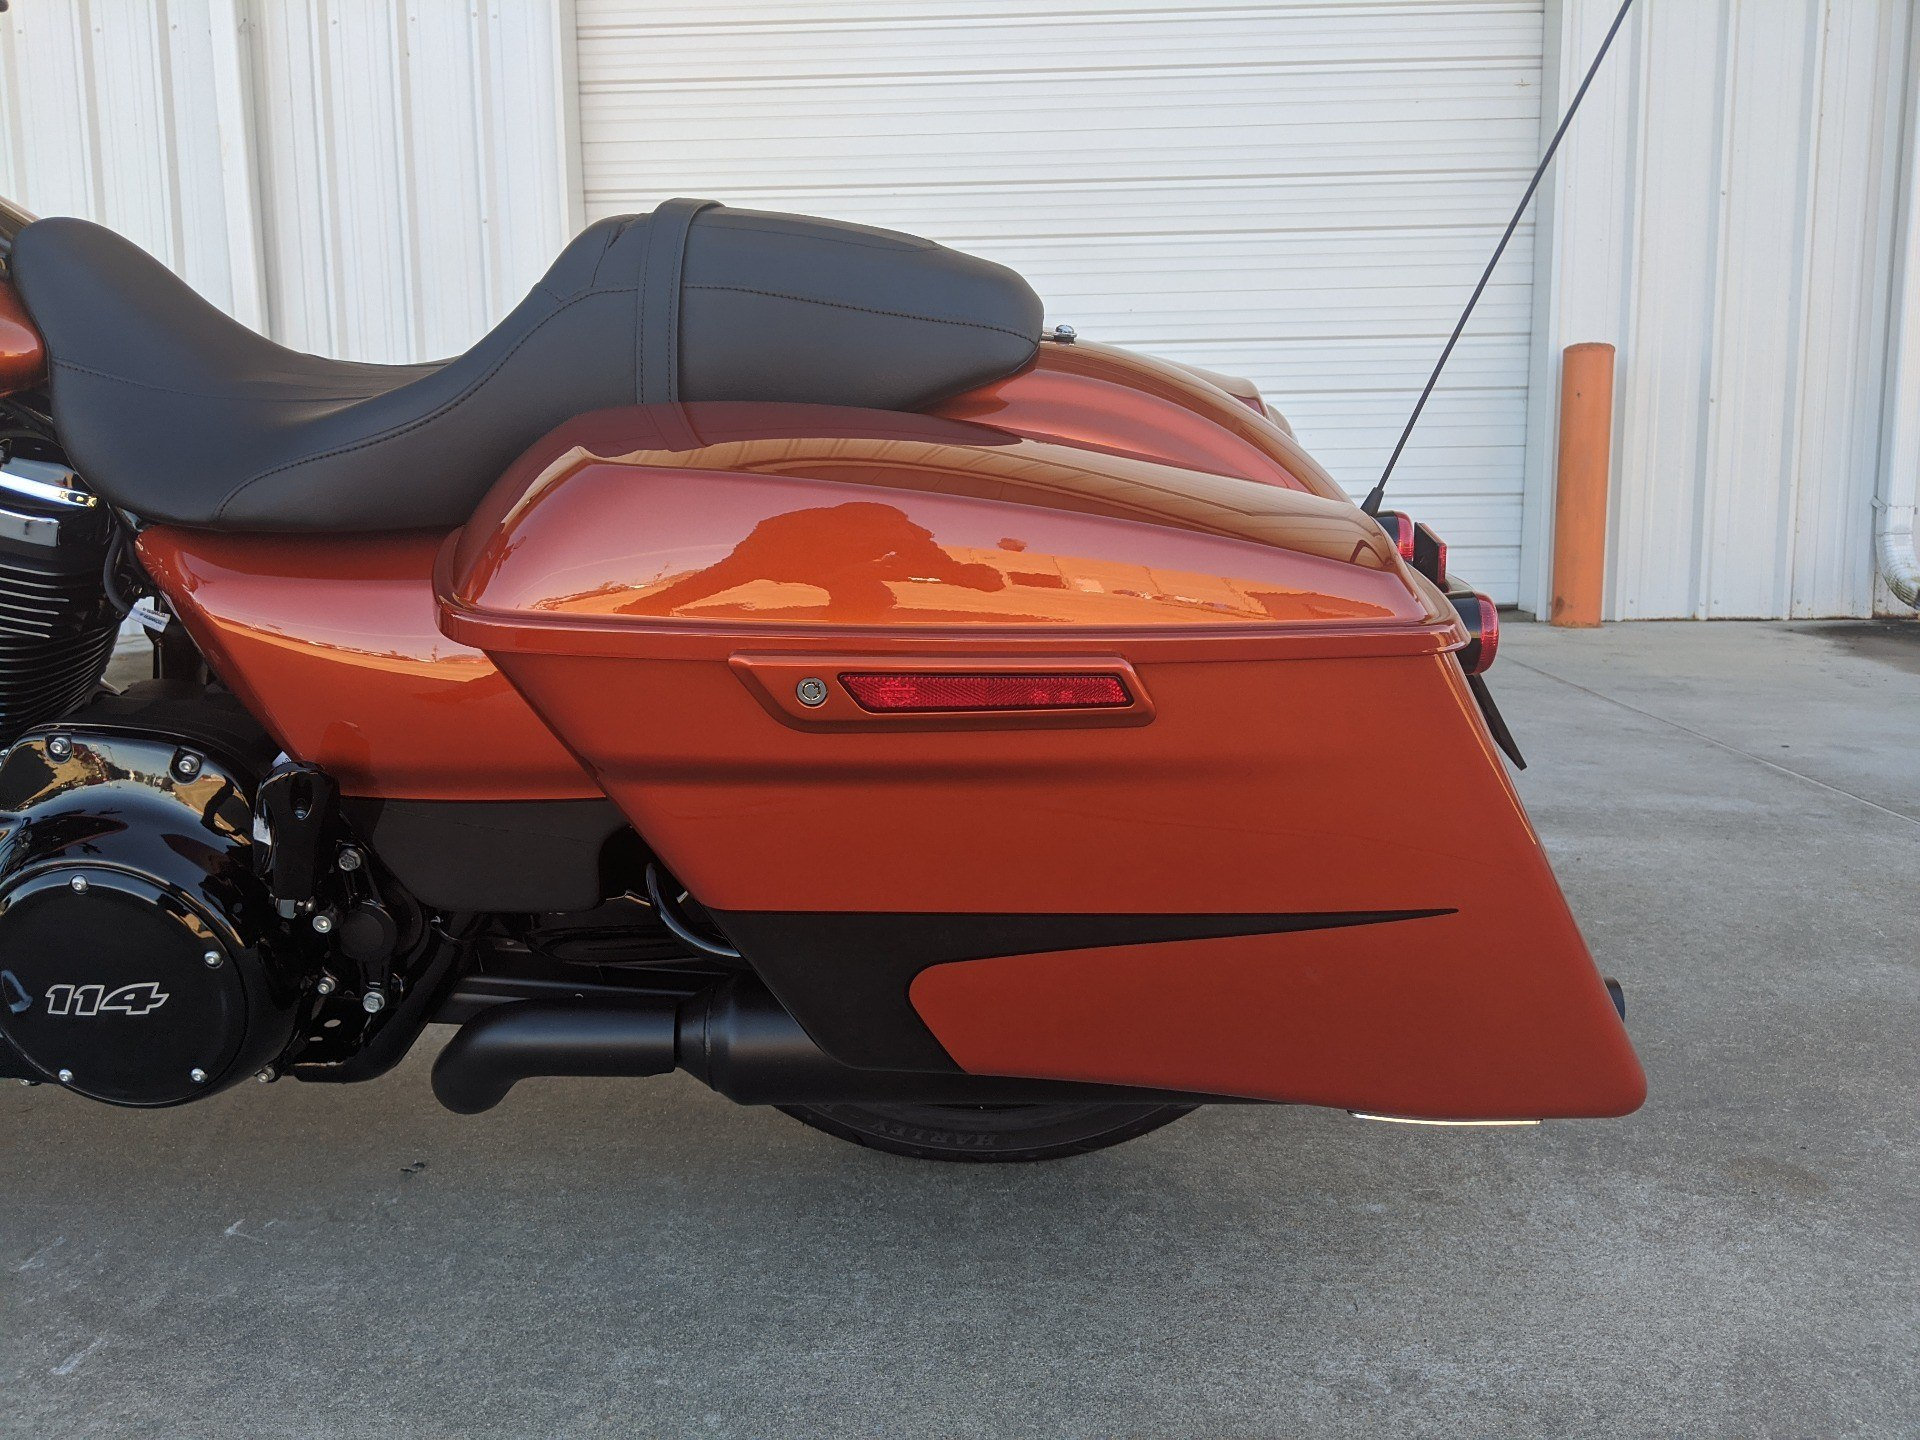 2020 road glide special for sale near me - Photo 8